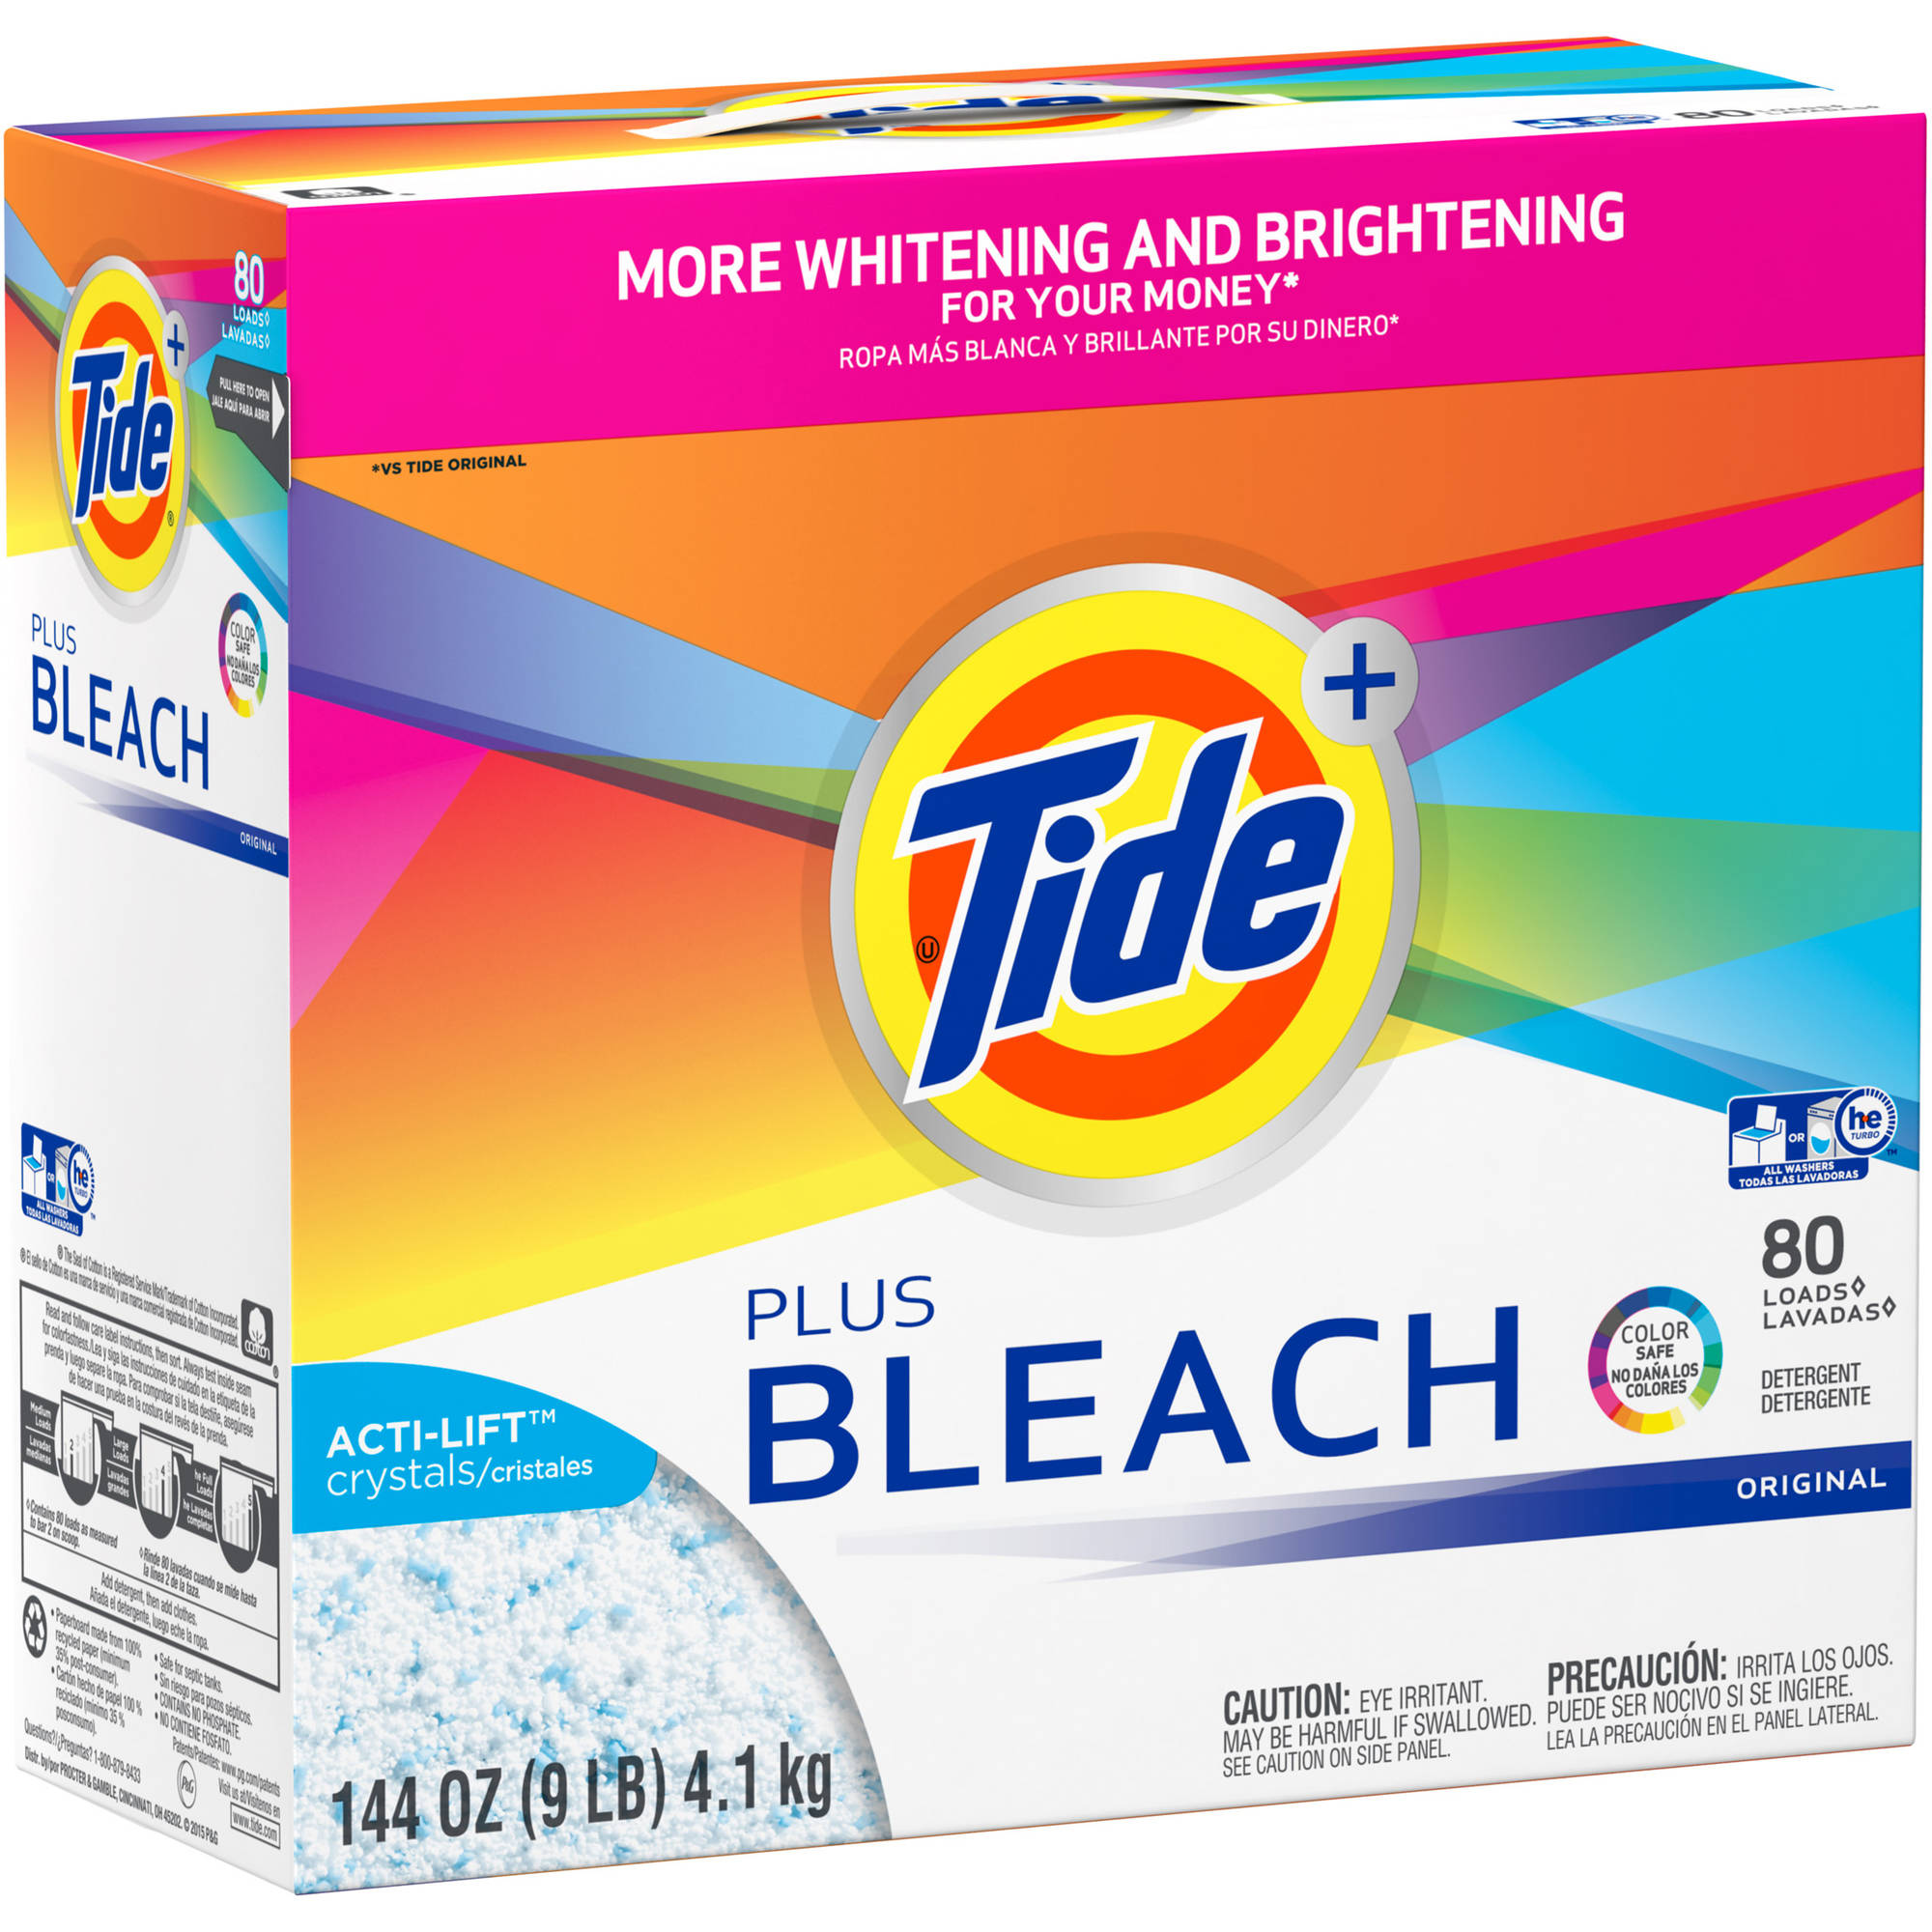 Tide Ultra Plus Bleach Original Scent Powder Laundry Detergent, 144 oz